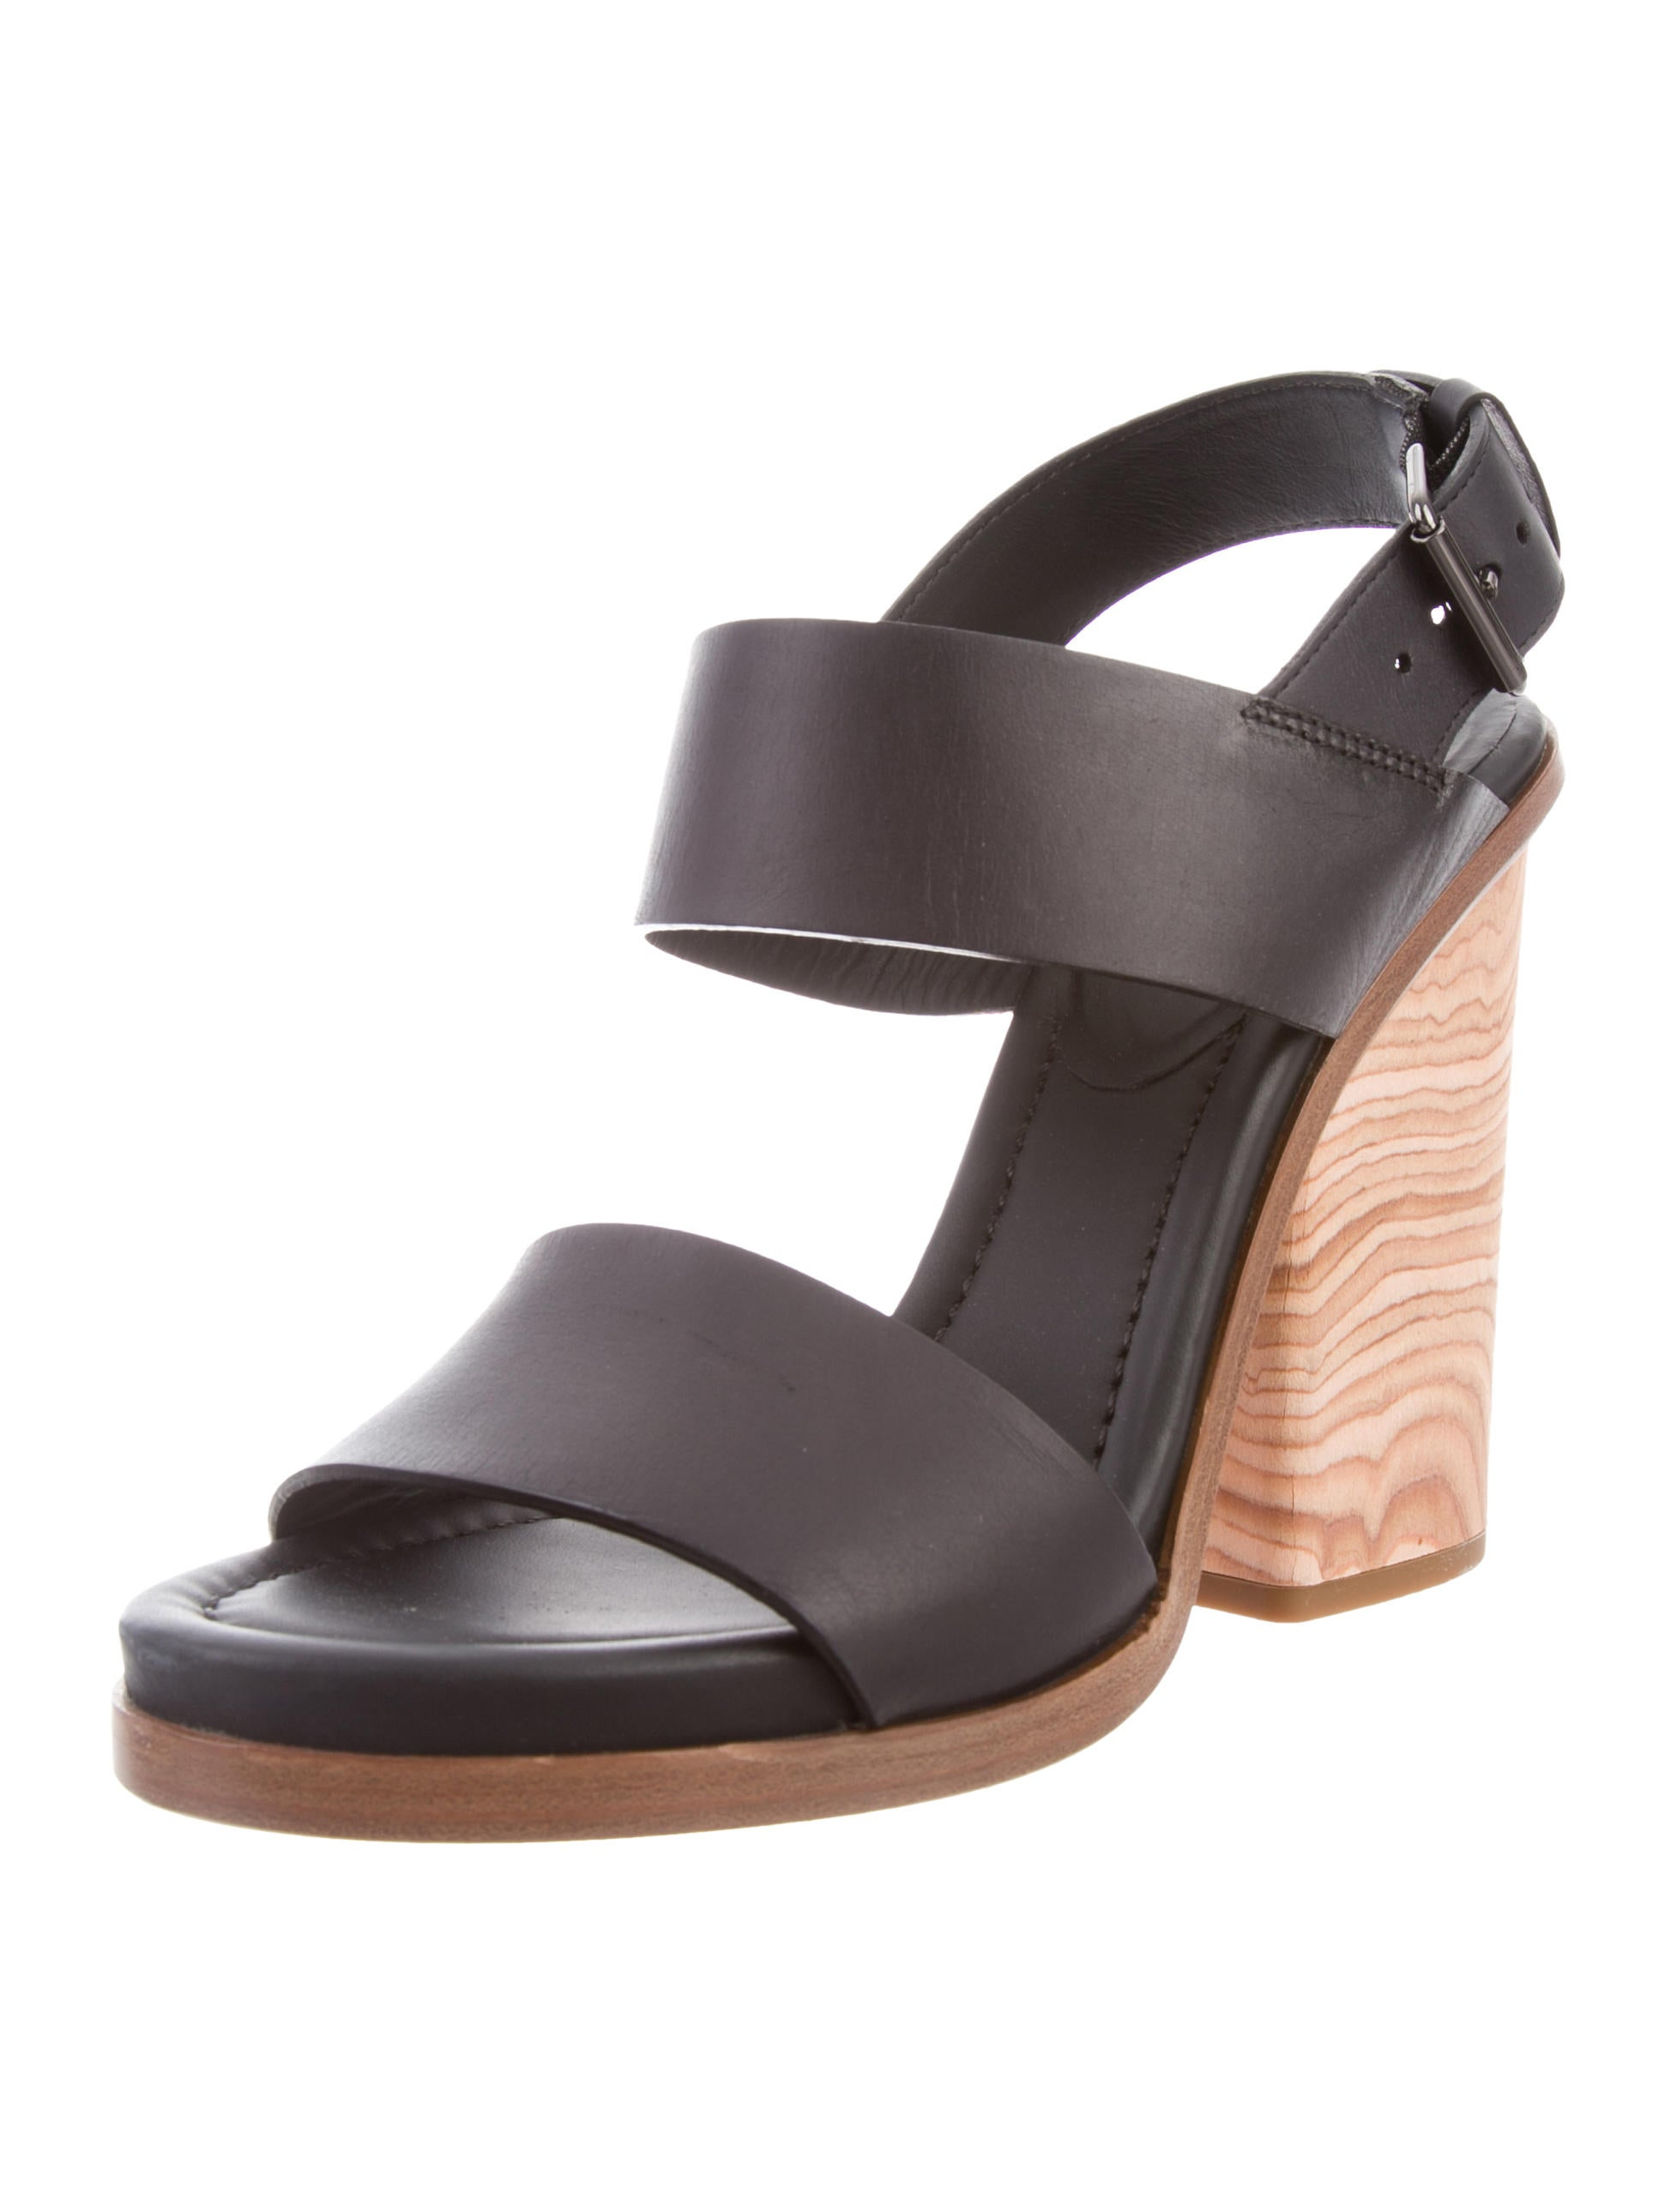 84857e17a01 Vince Leather Ankle Strap Sandals - Shoes - WVN37563